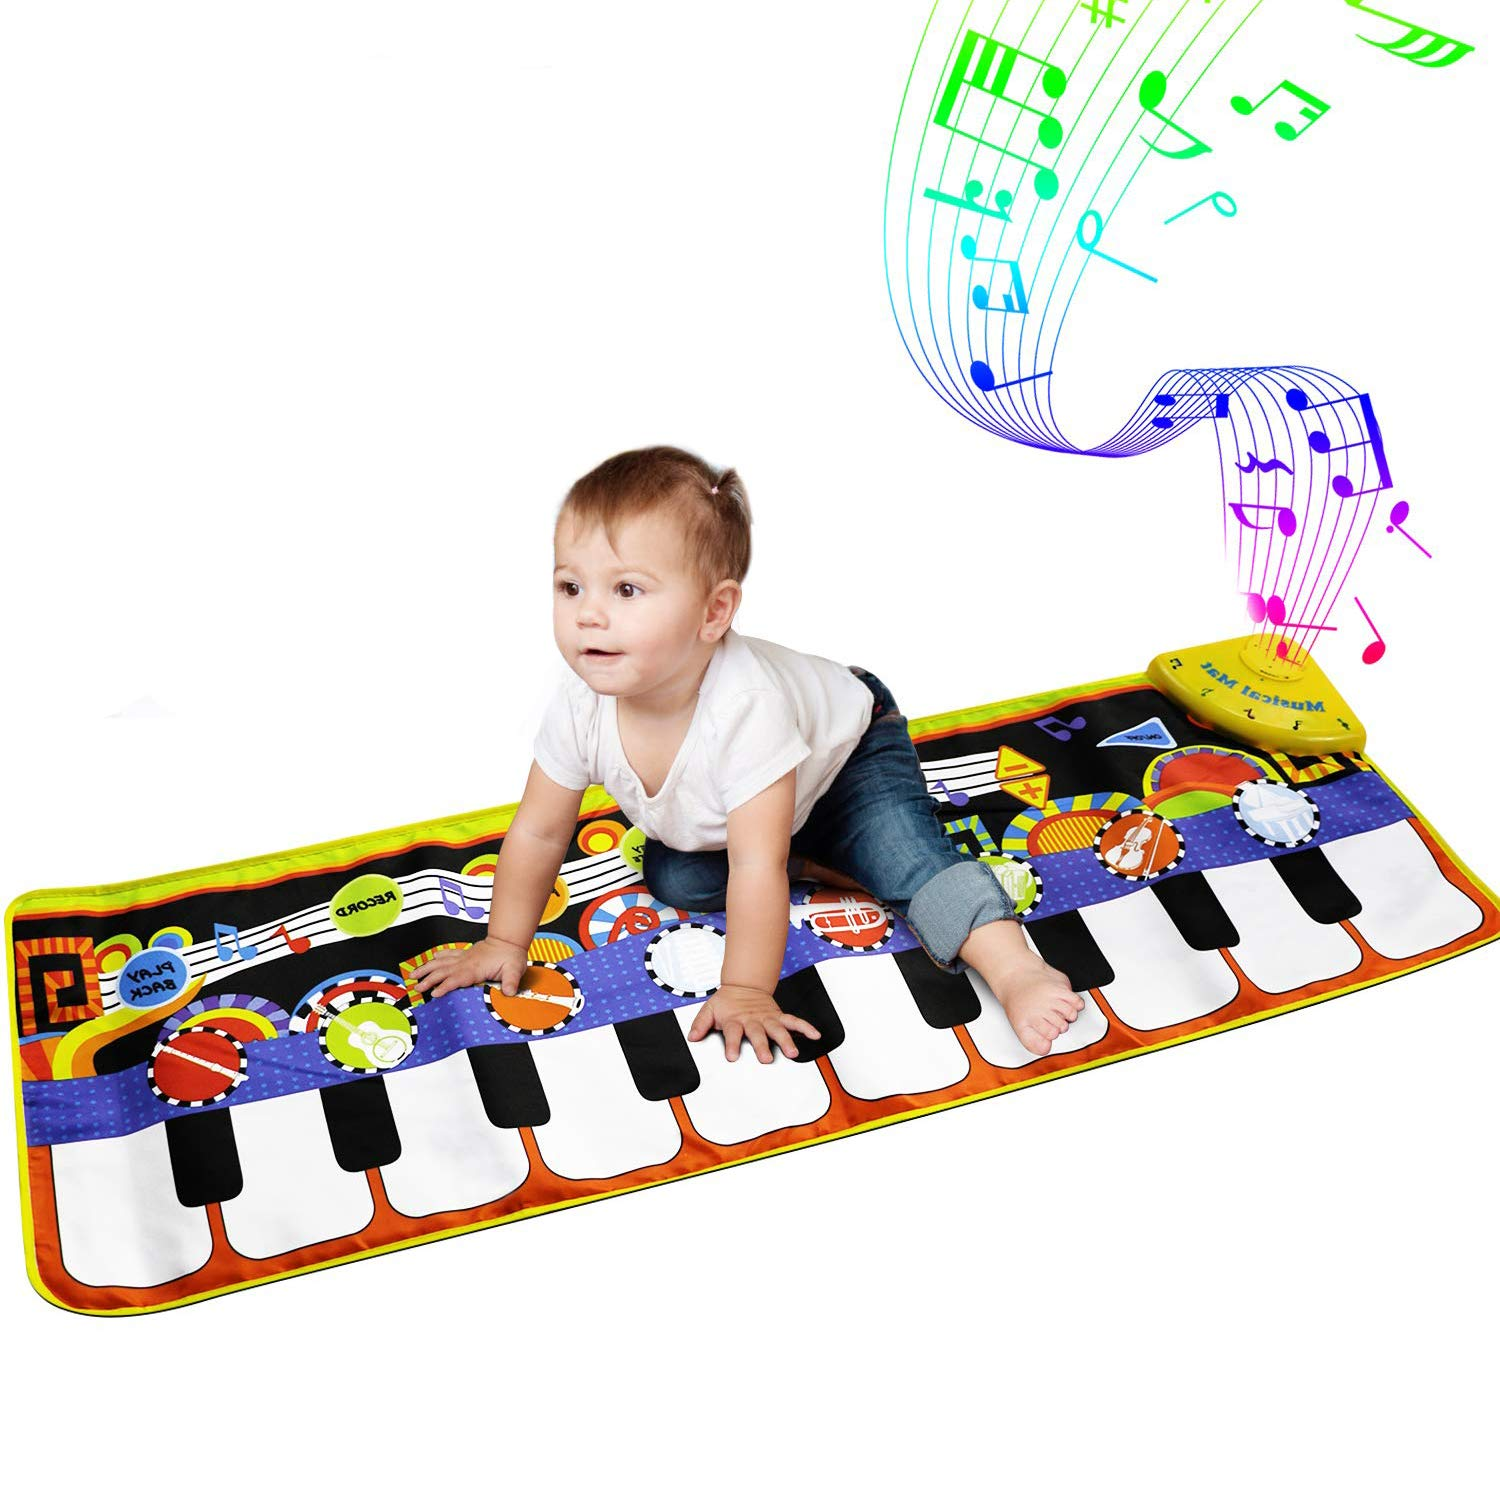 AIMDEYOU Kids Music Piano Keyboard Musical Mats Dance Floor Mat Carpet Animal Blanket Touch Playmat Early Education Toys for Baby Toddler Infants Girls Boys, 43.3 x14.2 inch by AIMEDYOU